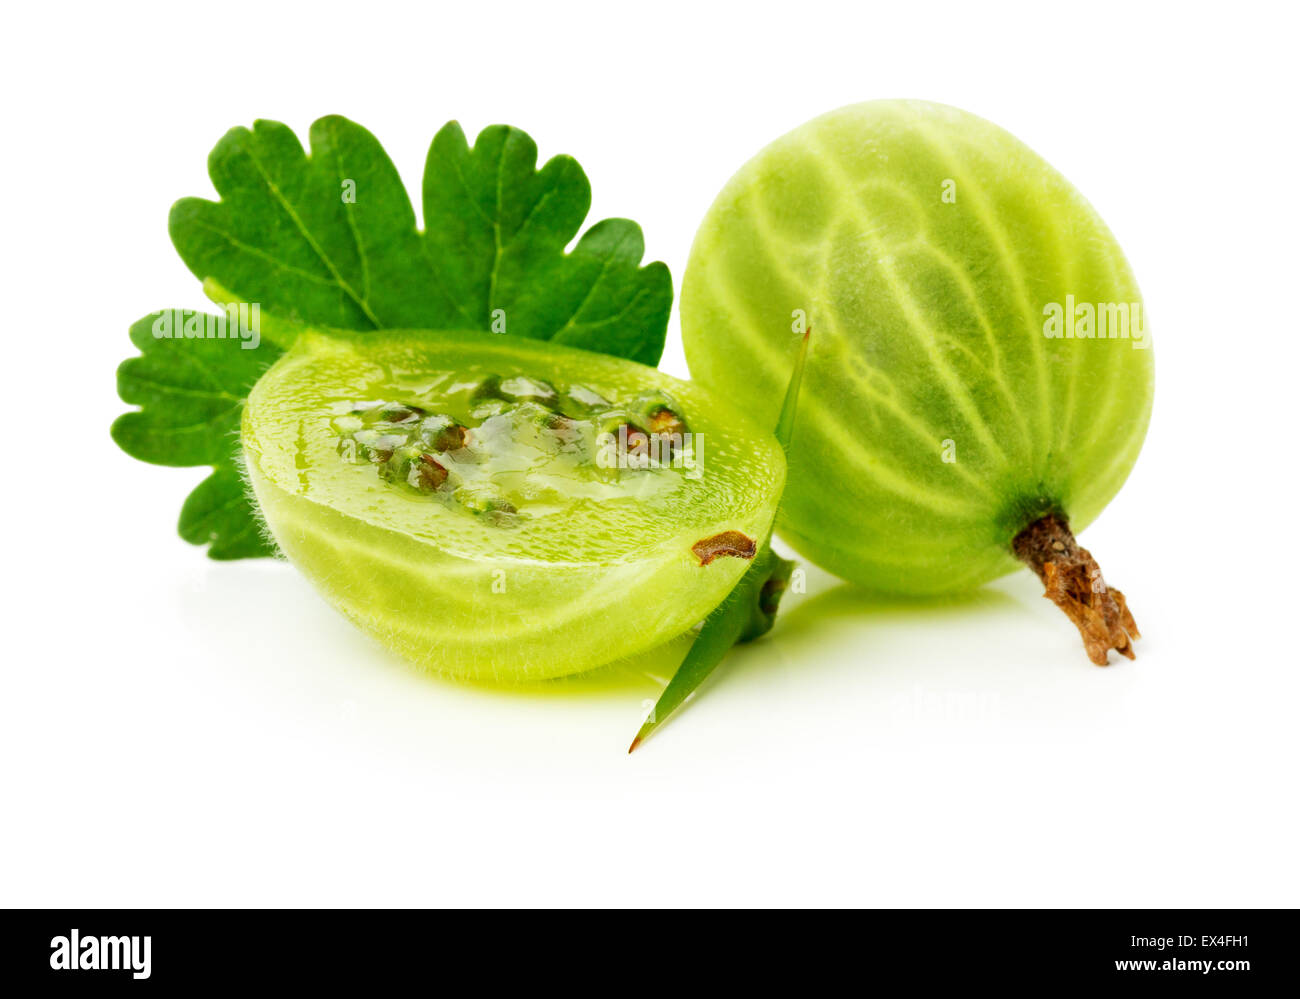 juicy ripe gooseberry on the white background. - Stock Image